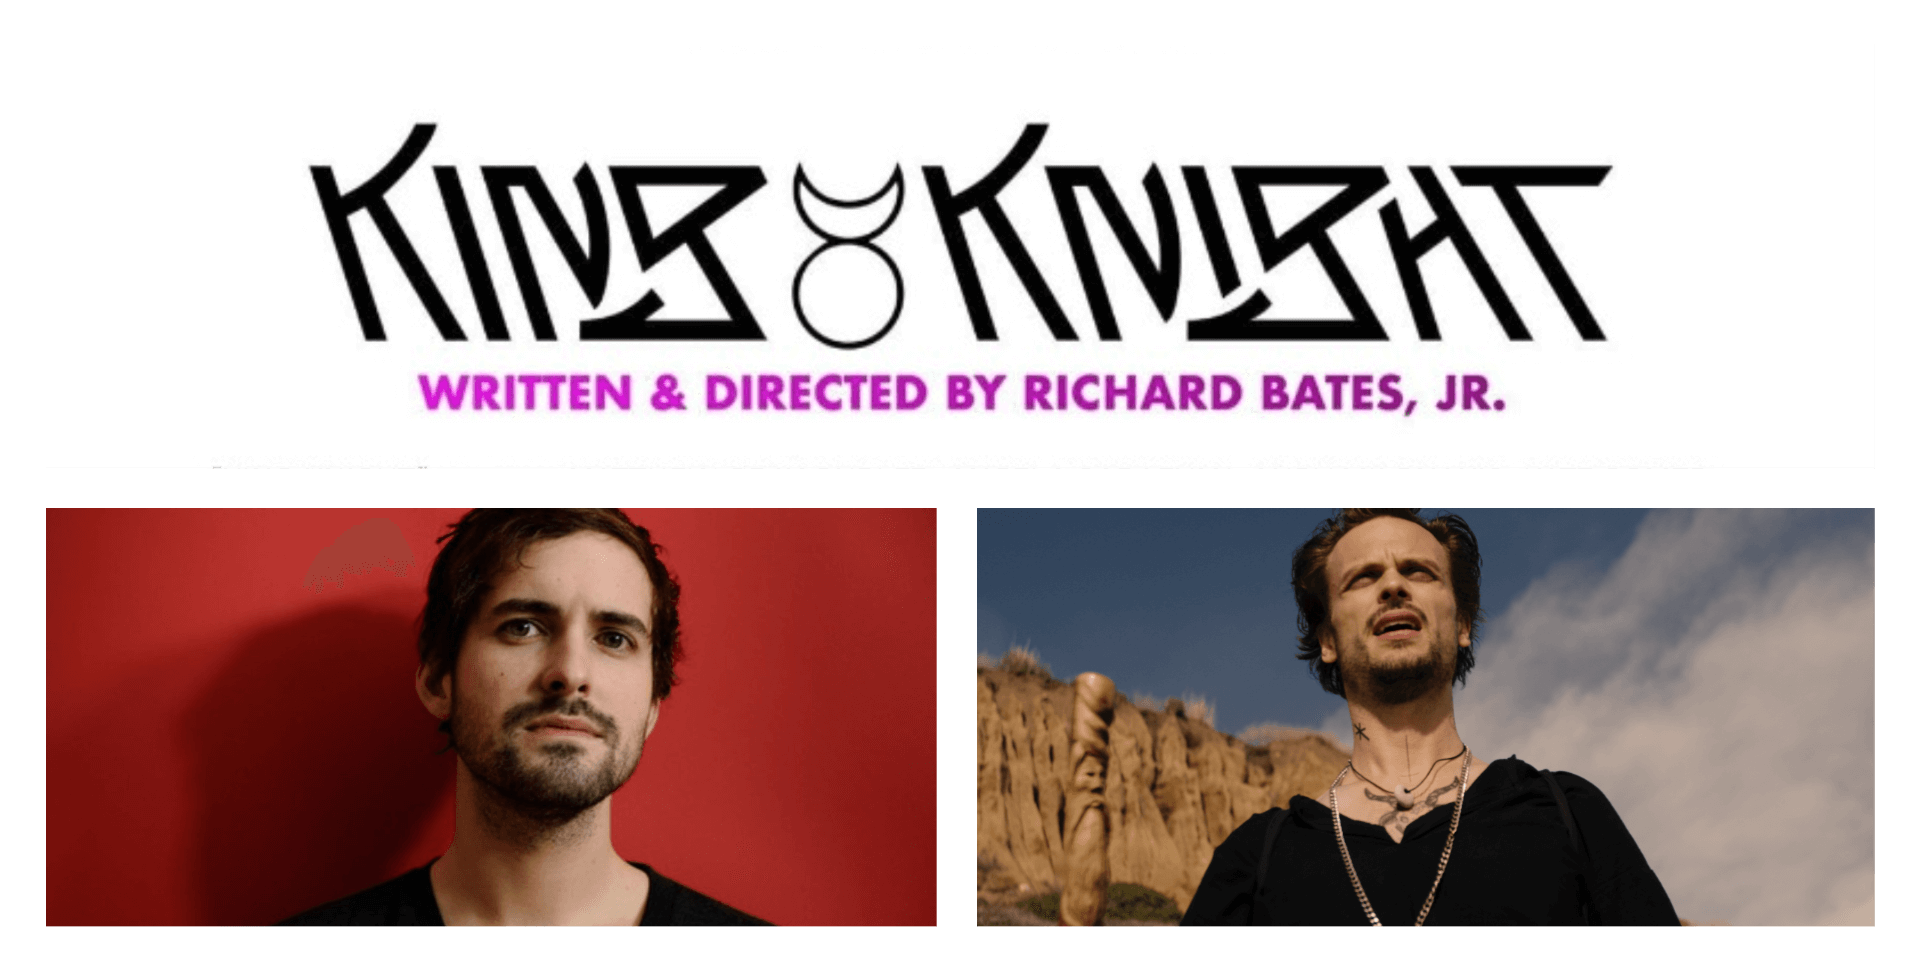 Interview with King Knight writer/director Richard Bates Jr